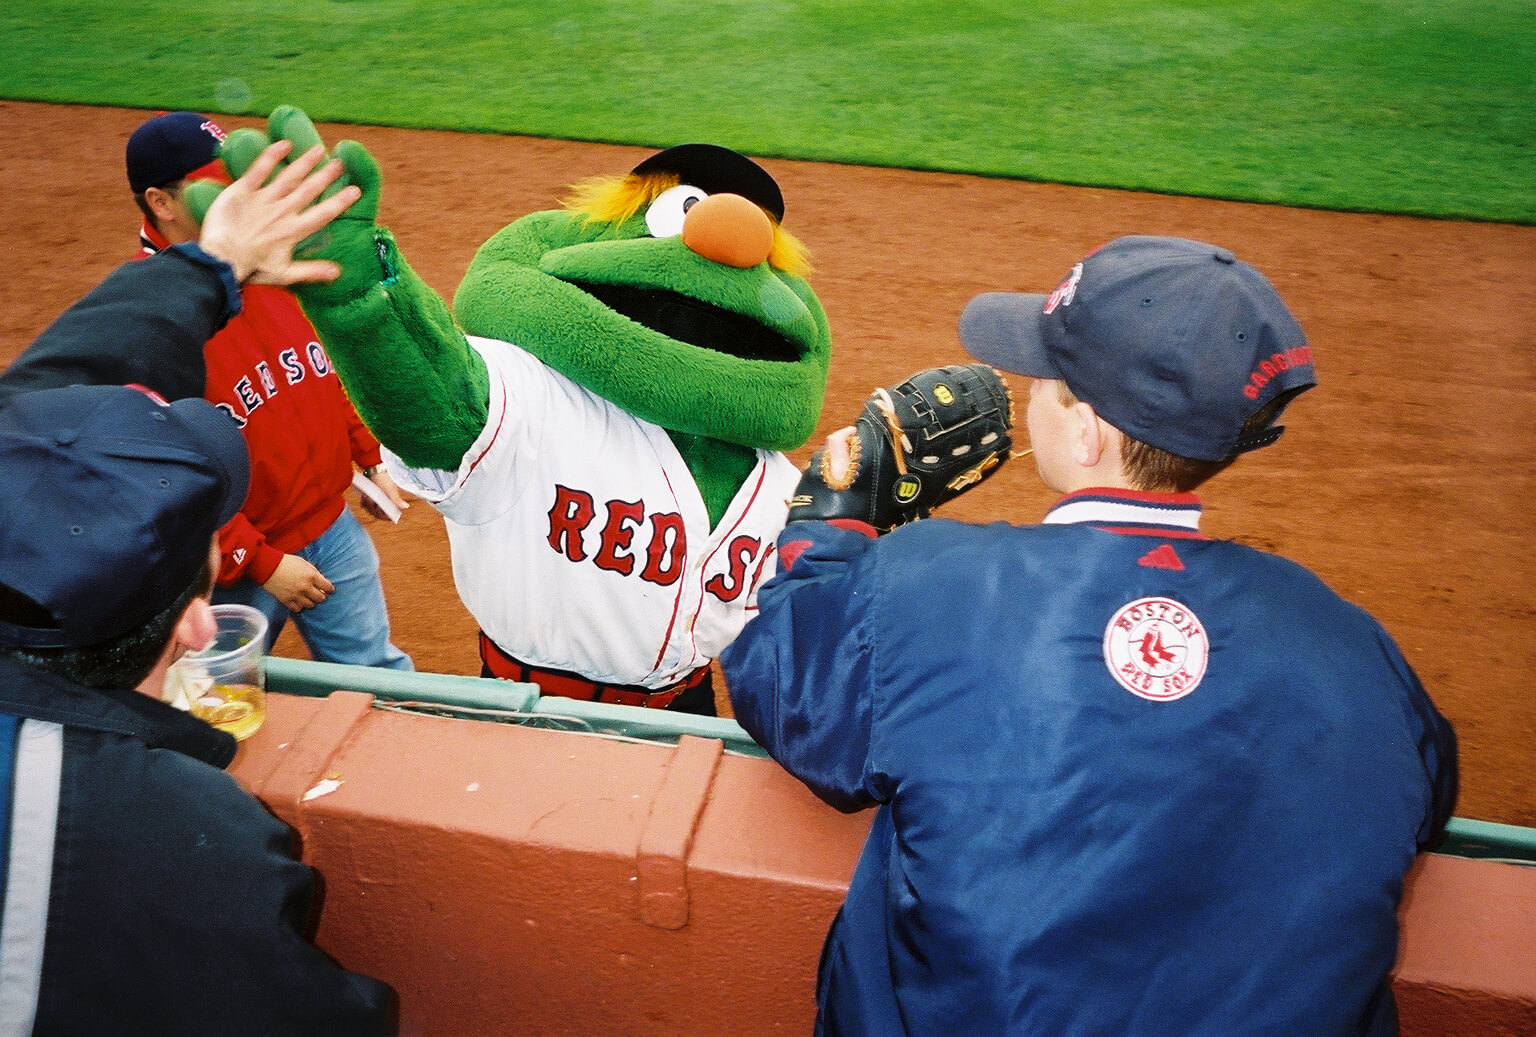 Wally the Green Monster Boston Red Sox mascot